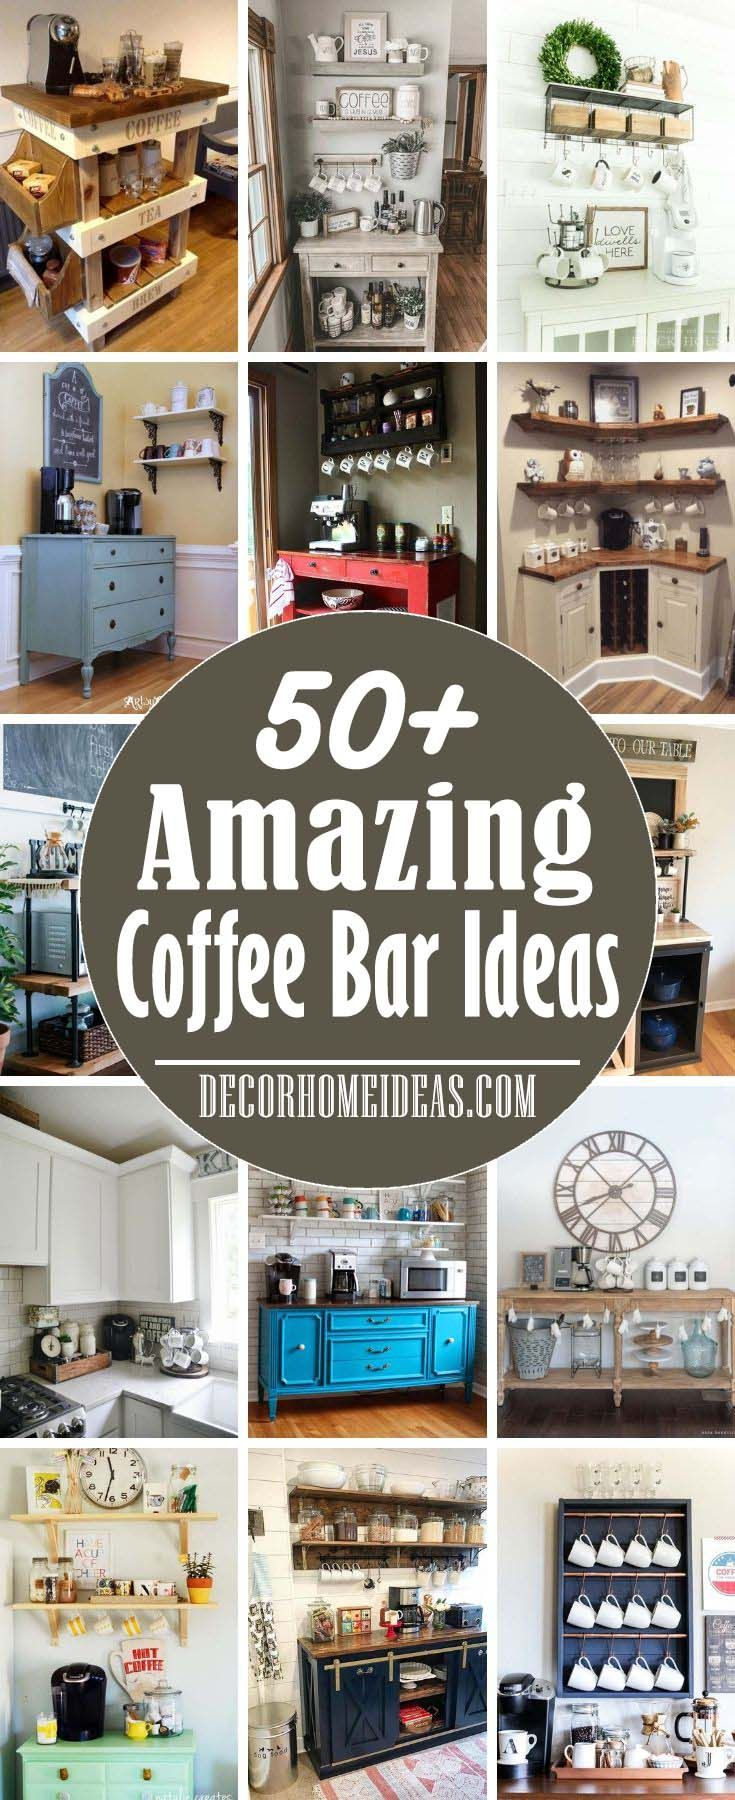 100 Best DIY Coffee Bar Ideas For All Coffee Lovers -   15 diy projects Kitchen coffee stations ideas